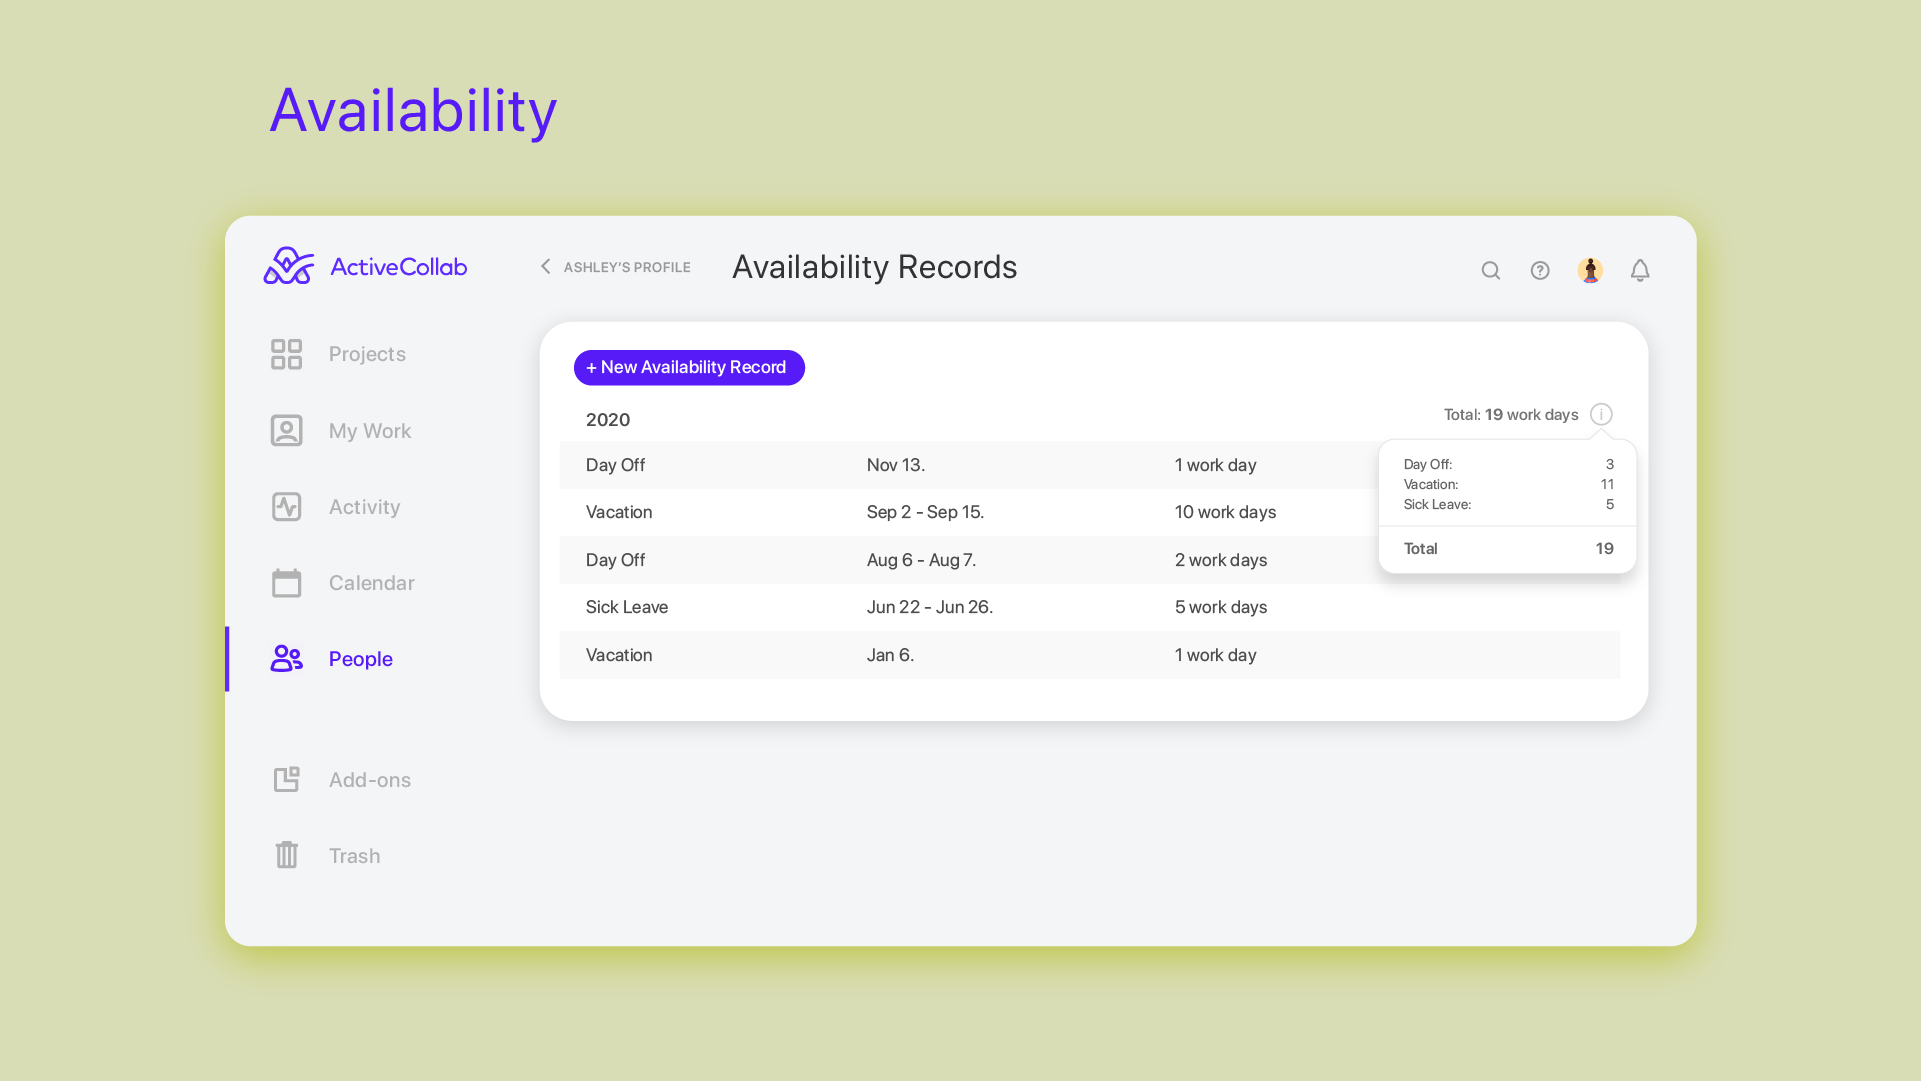 Everyone's availability at a glance